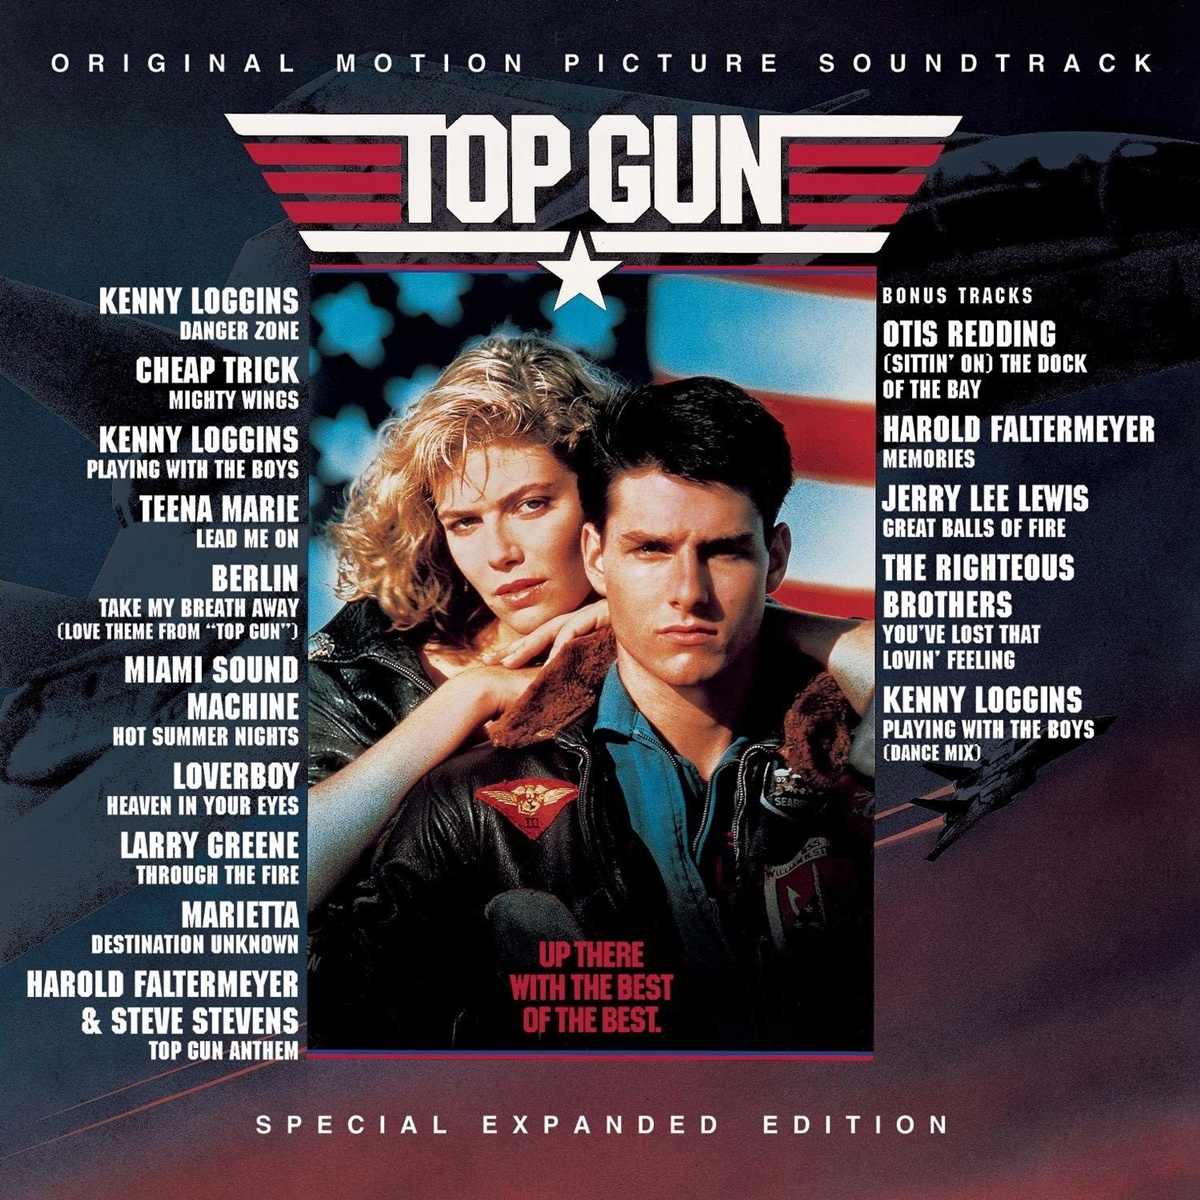 10 2 10 Film Soundtracks That Will Transport You Back To The 80s!